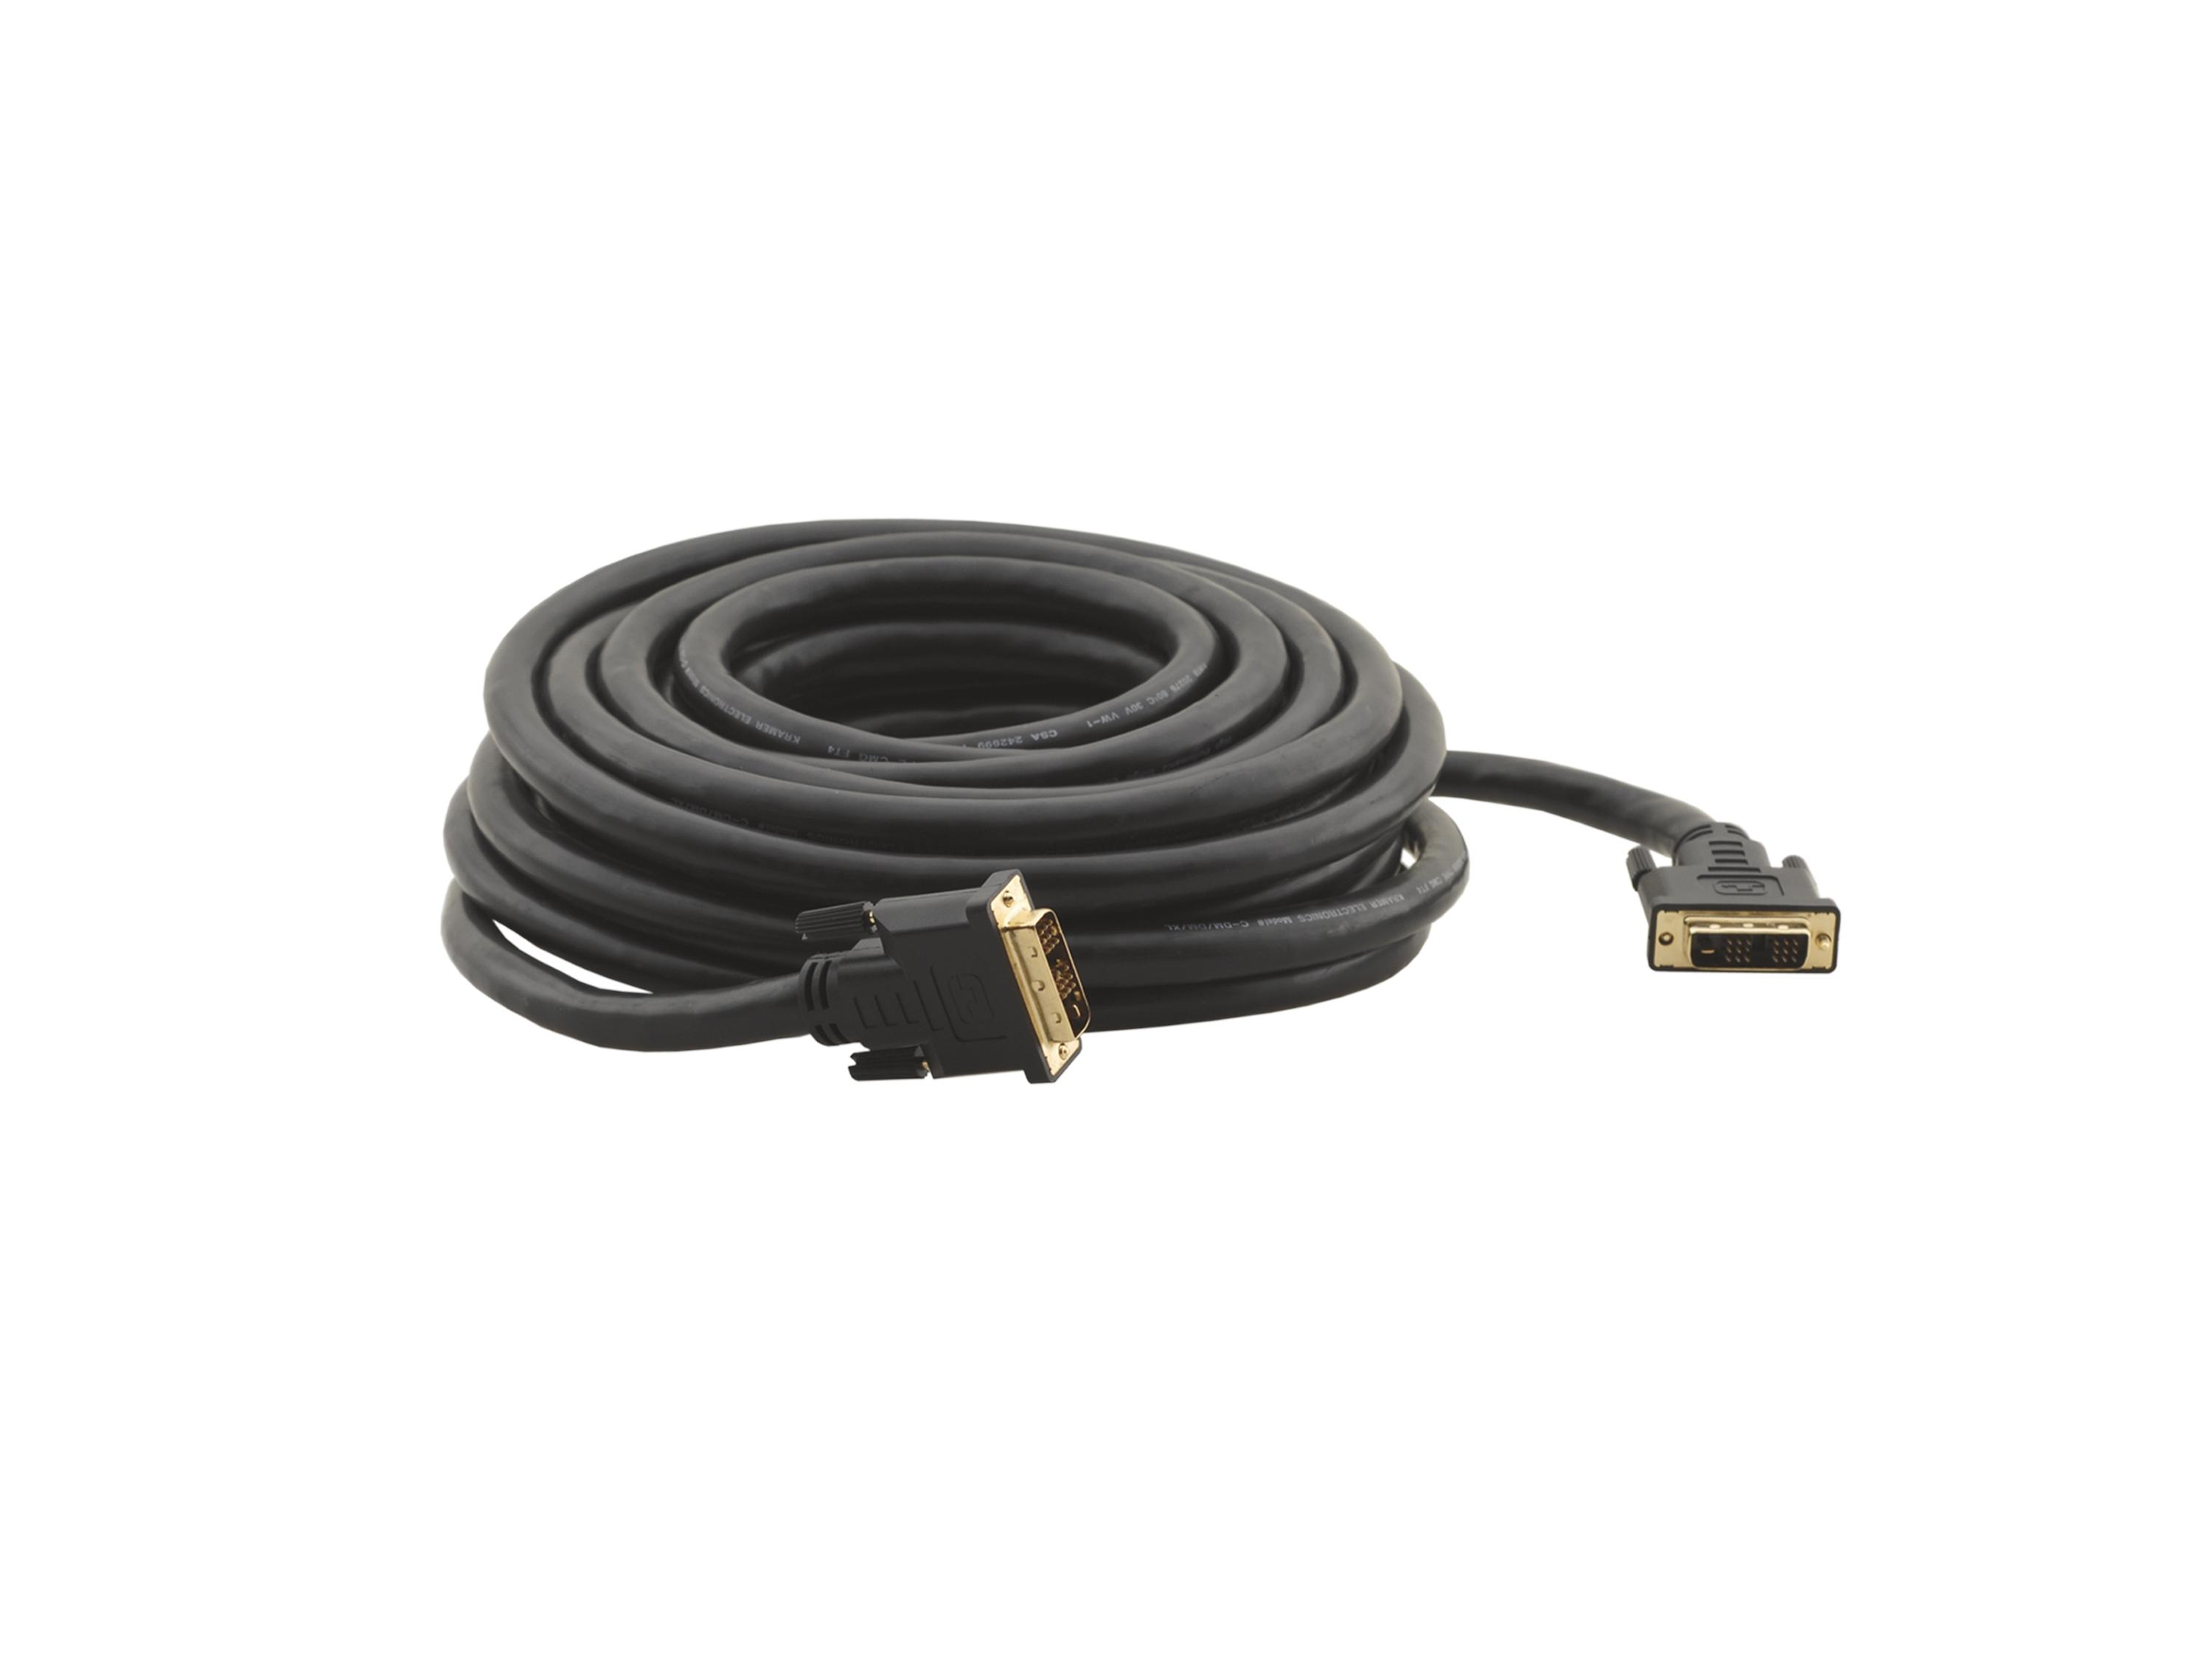 C-DM/DM/XL-50 50ft DVI-D (M) to DVI-D (M) Cable (HDCP Compliant) by Kramer